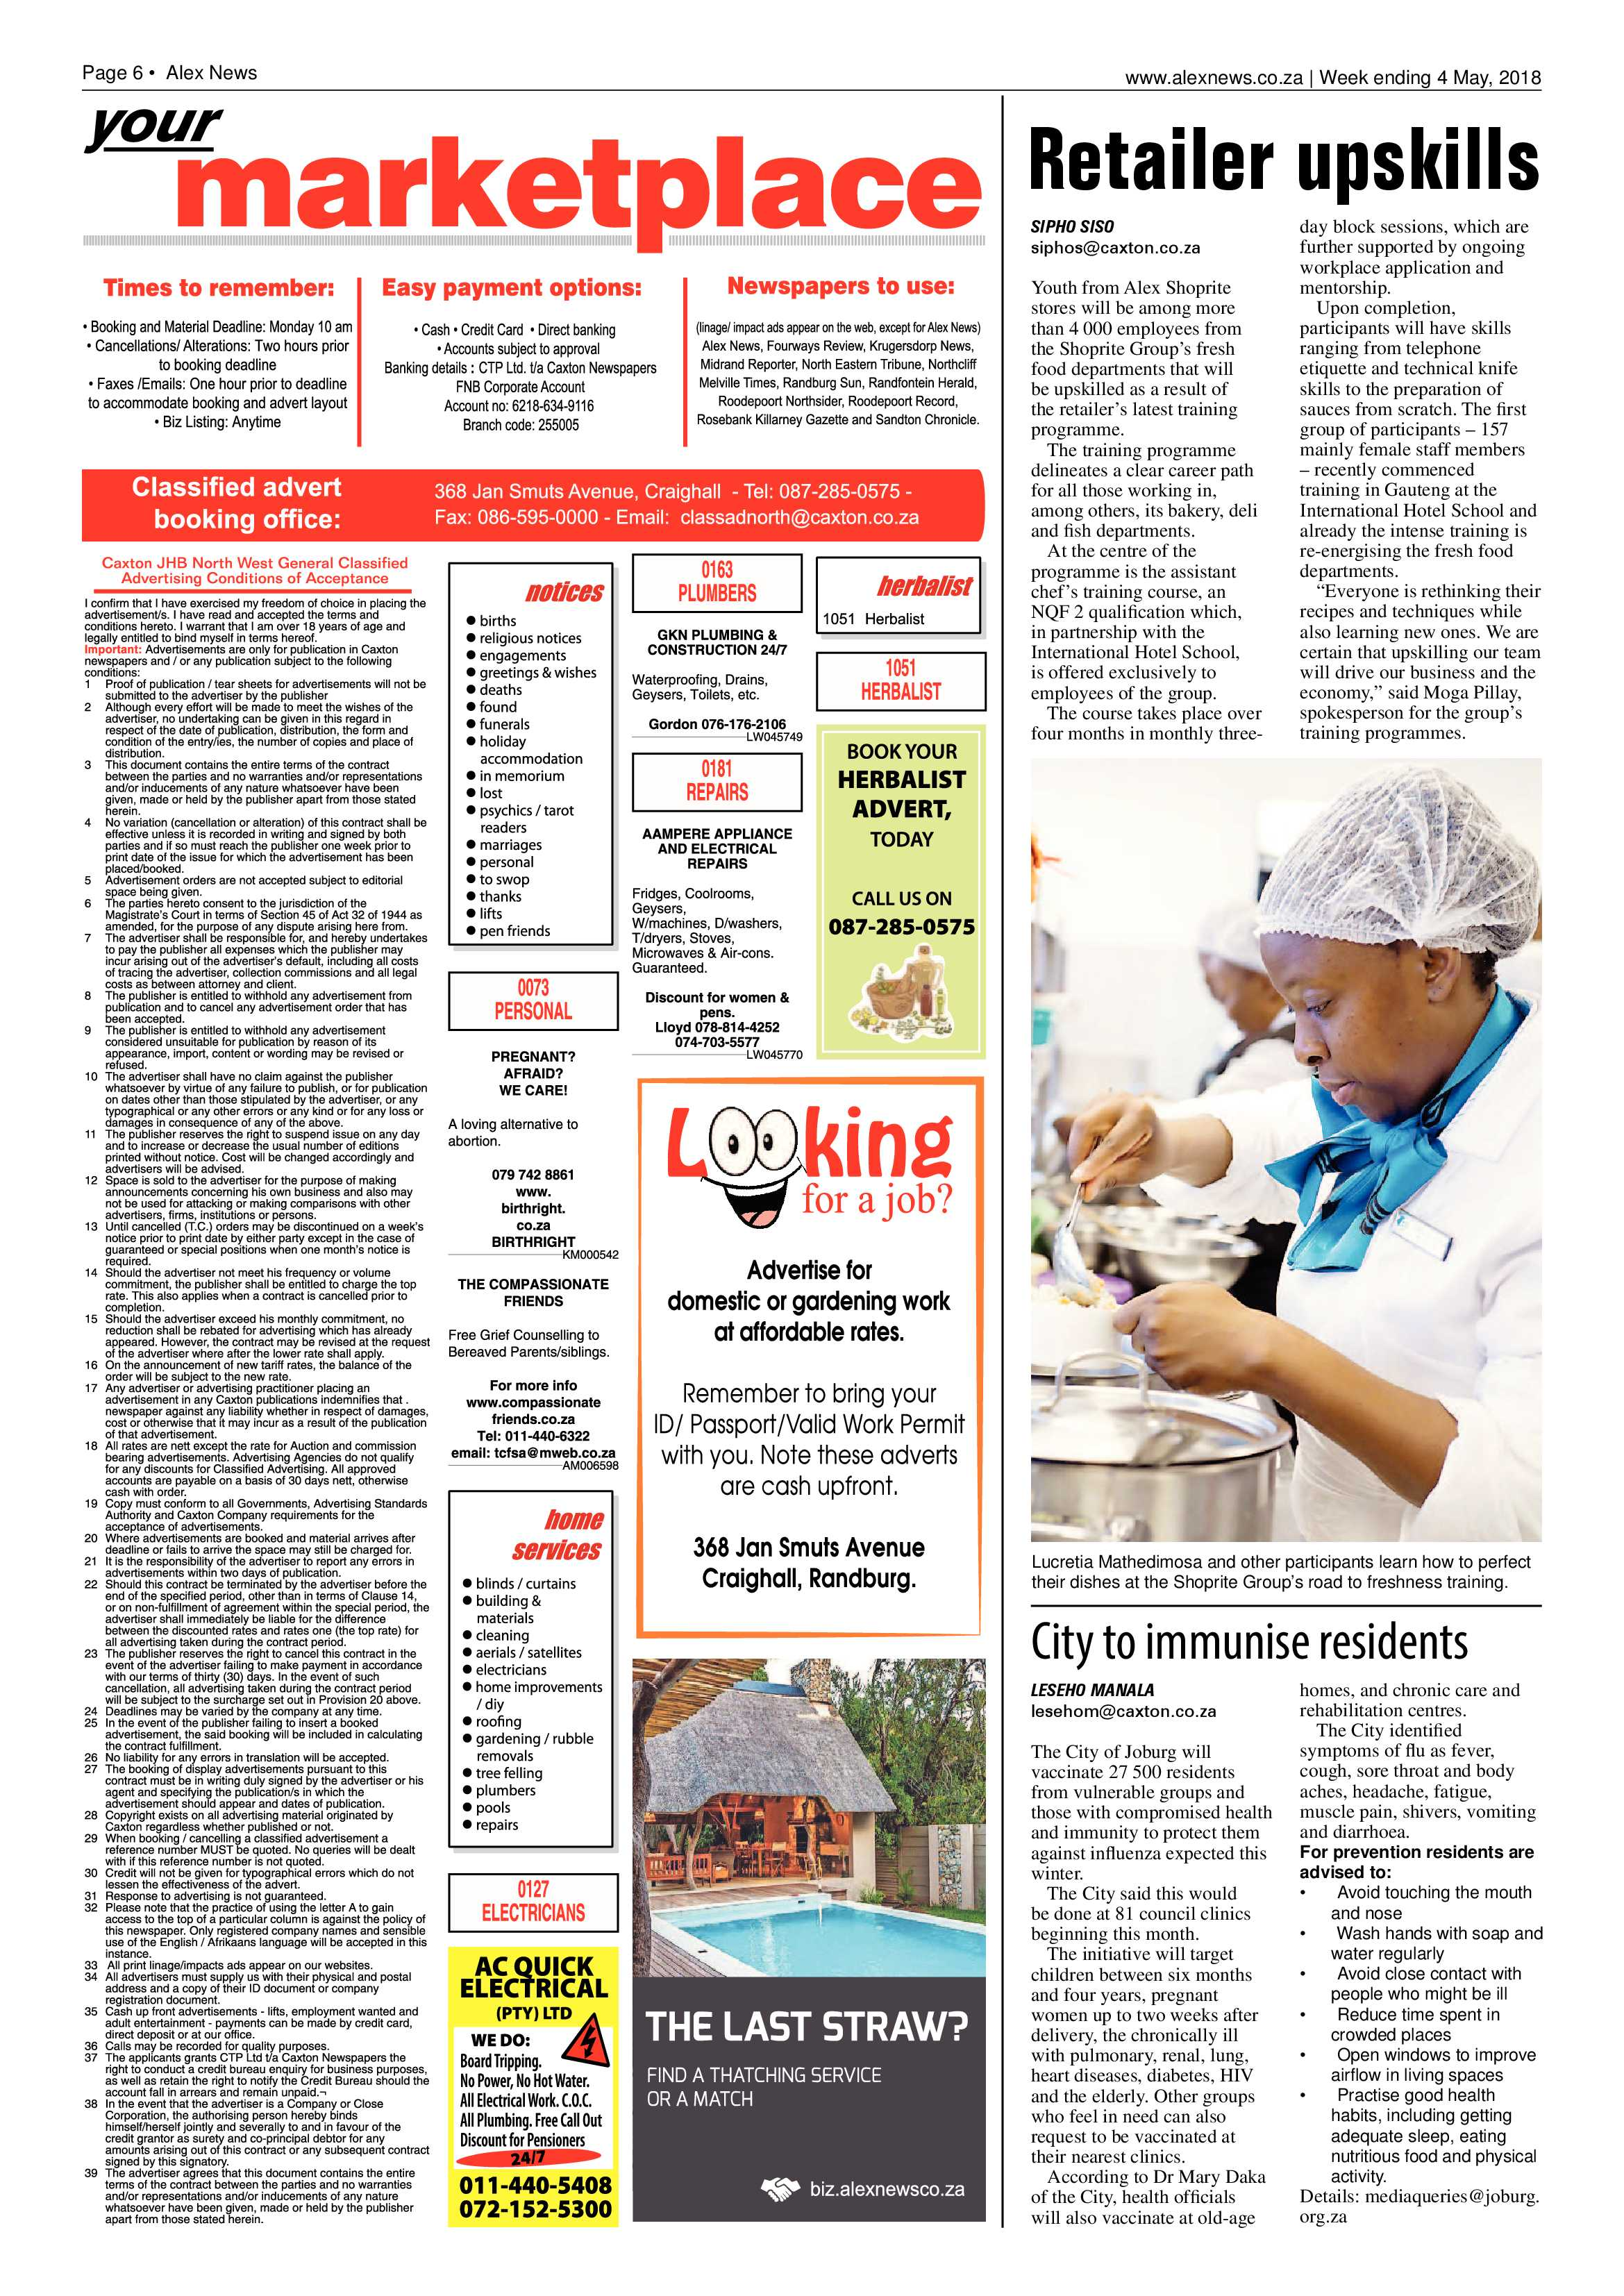 alex-news-4-may-2018-epapers-page-6